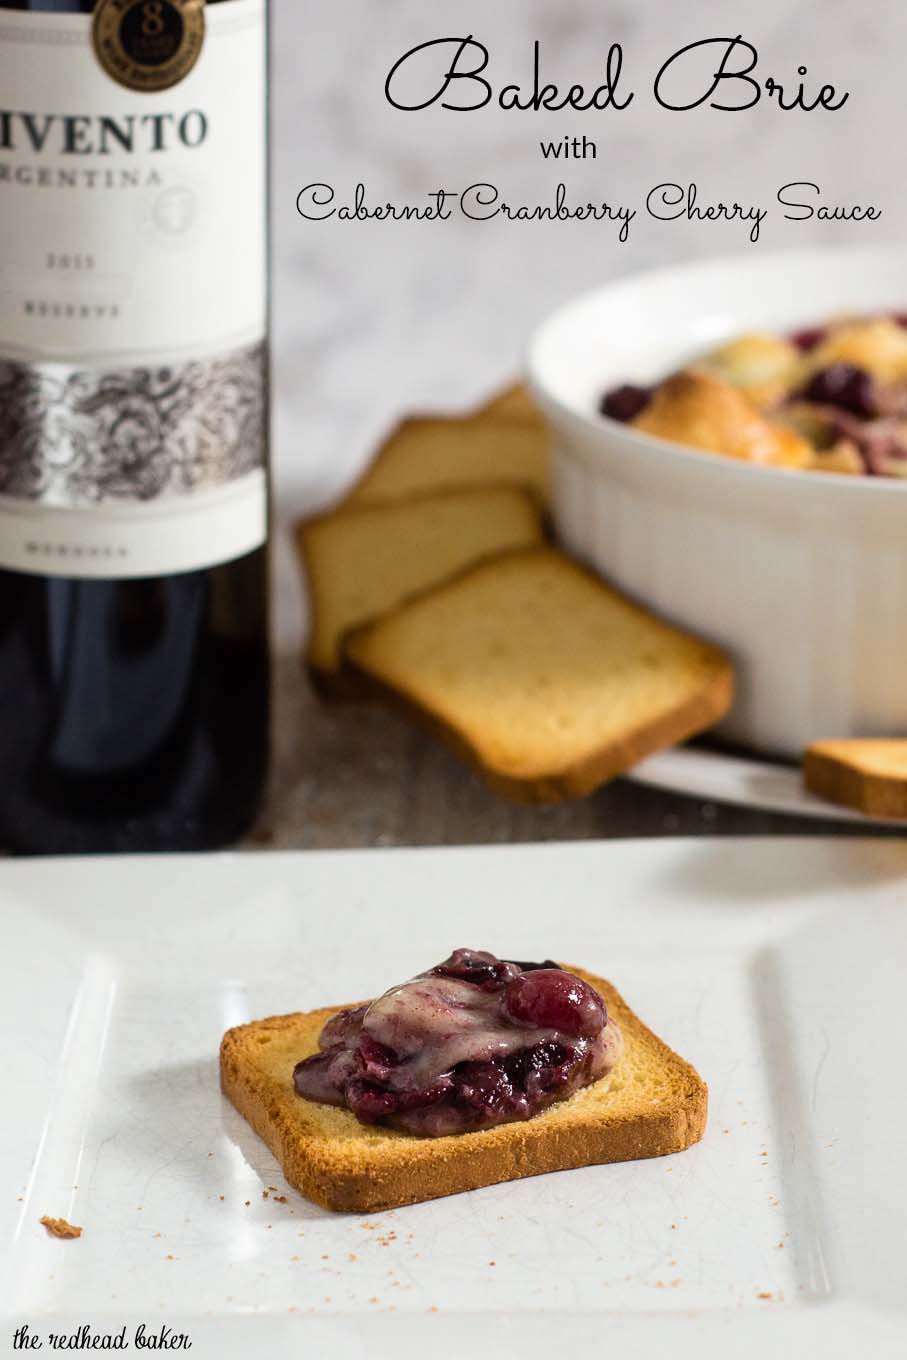 Baked brie en croute is a luxurious appetizer, and this one goes the extra mile with a flavorful cabernet cranberry cherry sauce. #ProgressiveEats